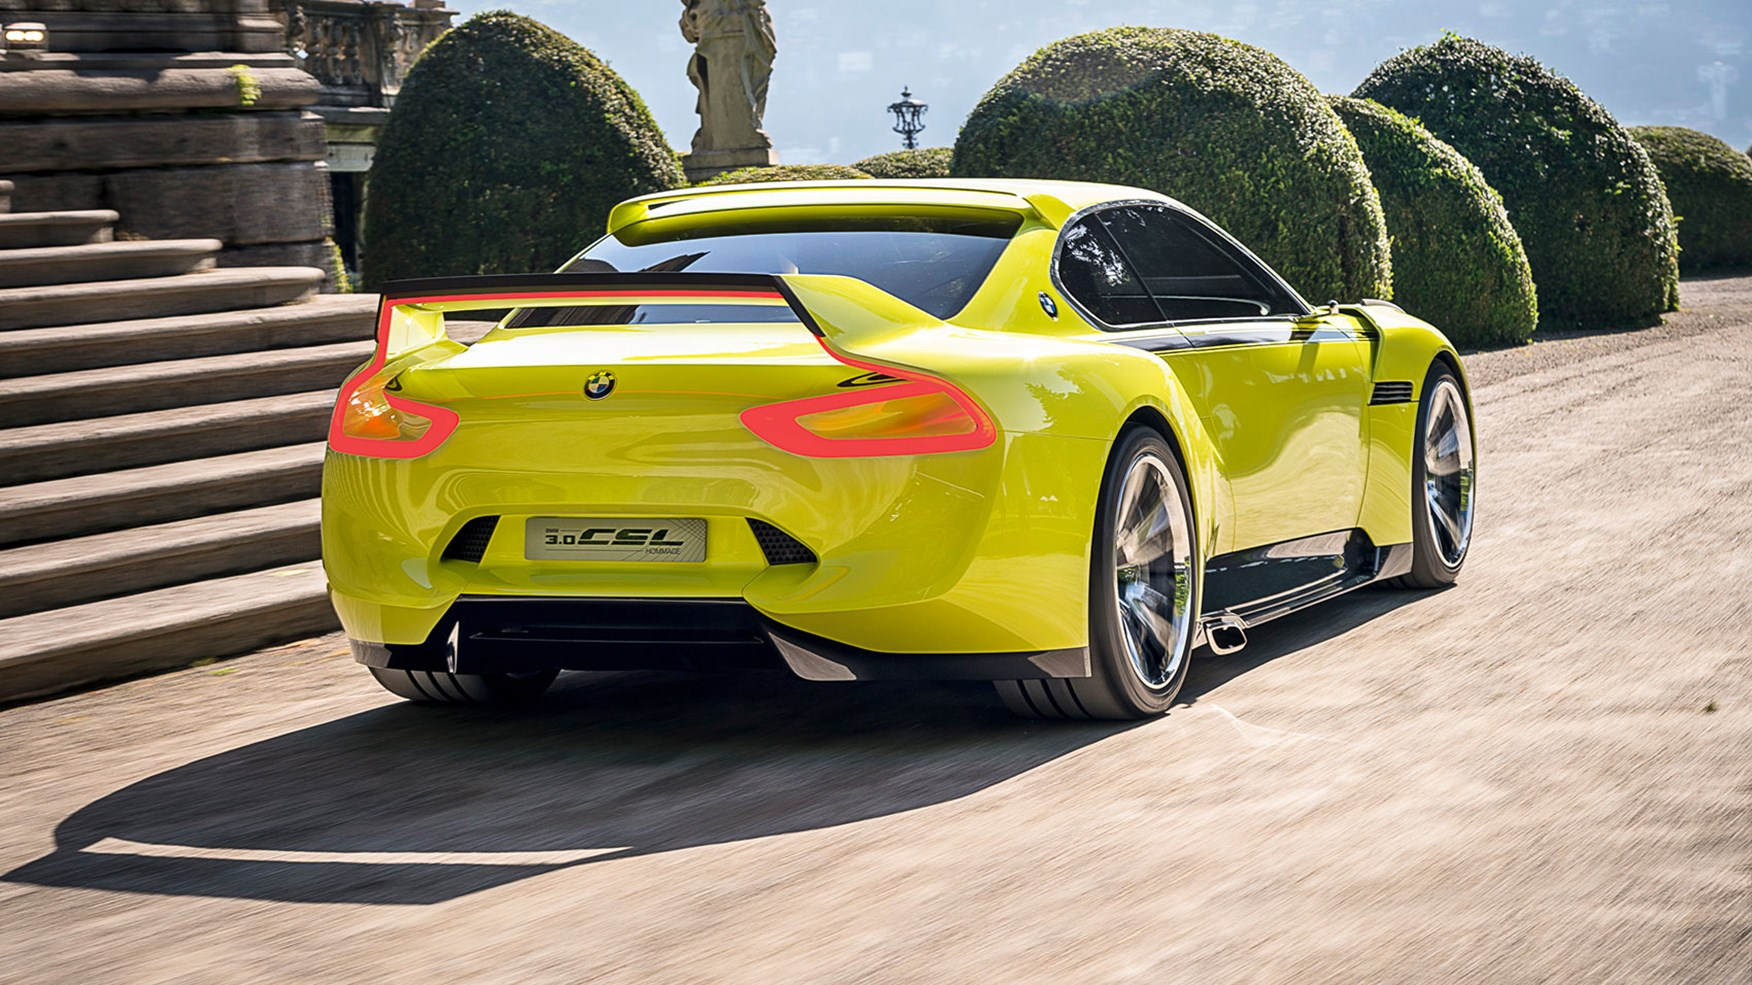 Bmw I8 Lease Deals >> BMW 3.0 CSL Hommage (2015) review by CAR Magazine